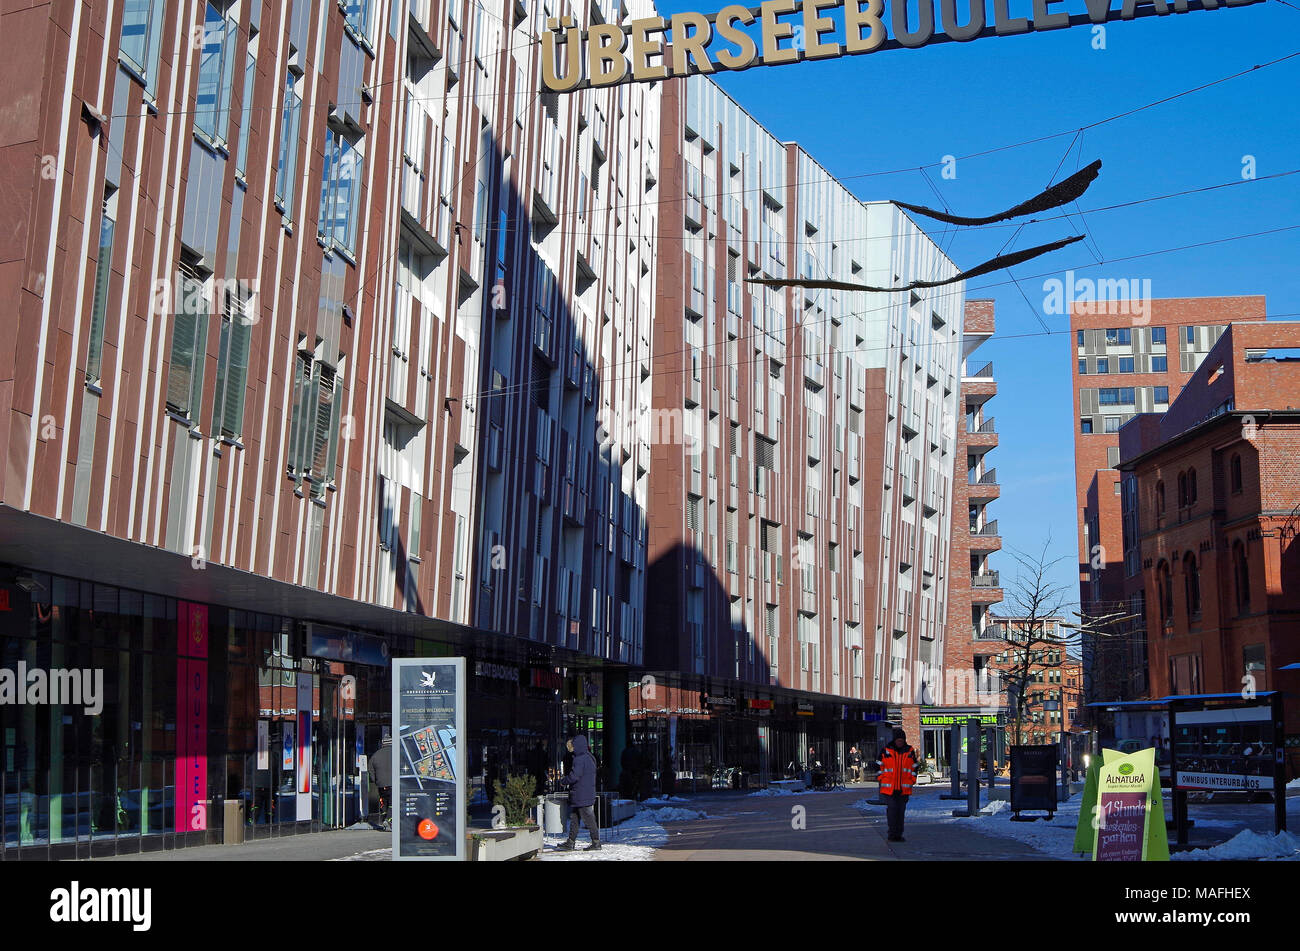 UberseeBoulevard, a 400m long shopping street, with apartment buildings above, in Hafen City, an immense  urban redevelopment project, in Hamburg, - Stock Image